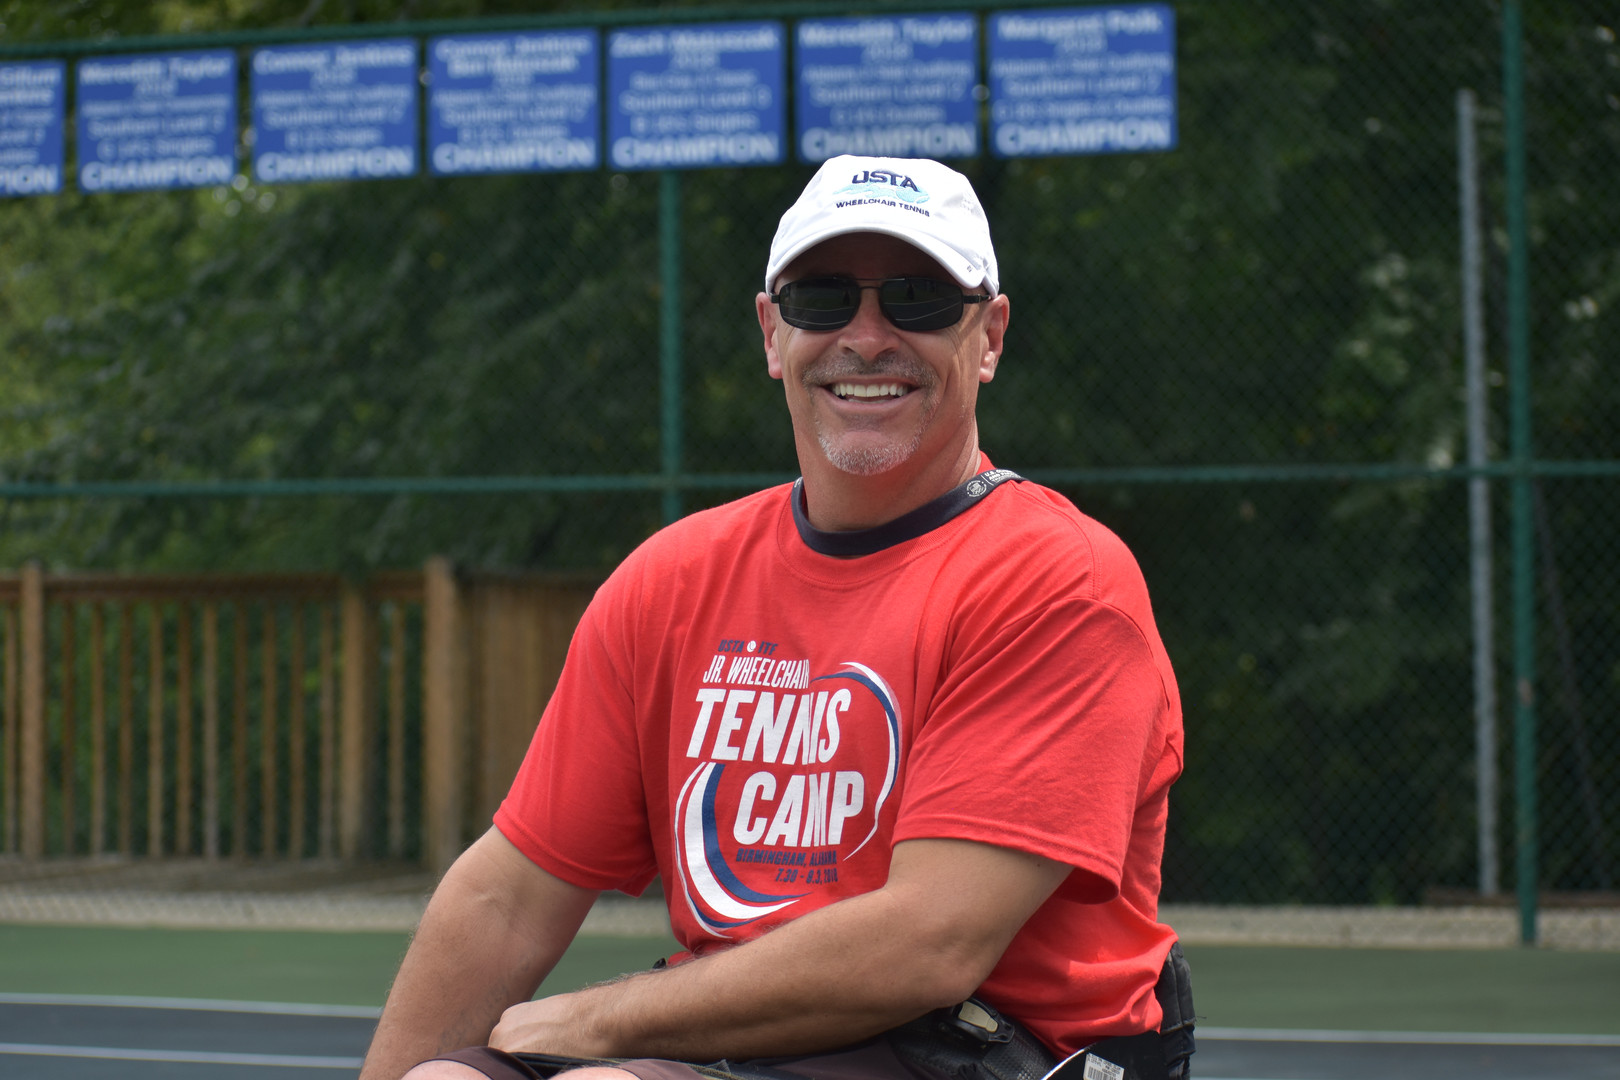 Team USA Coach Paul Walker at the 2018 USTA/ITF Junior Wheelchair Tennis Camp of the Americas, Birmingham, Ala. - July 2018